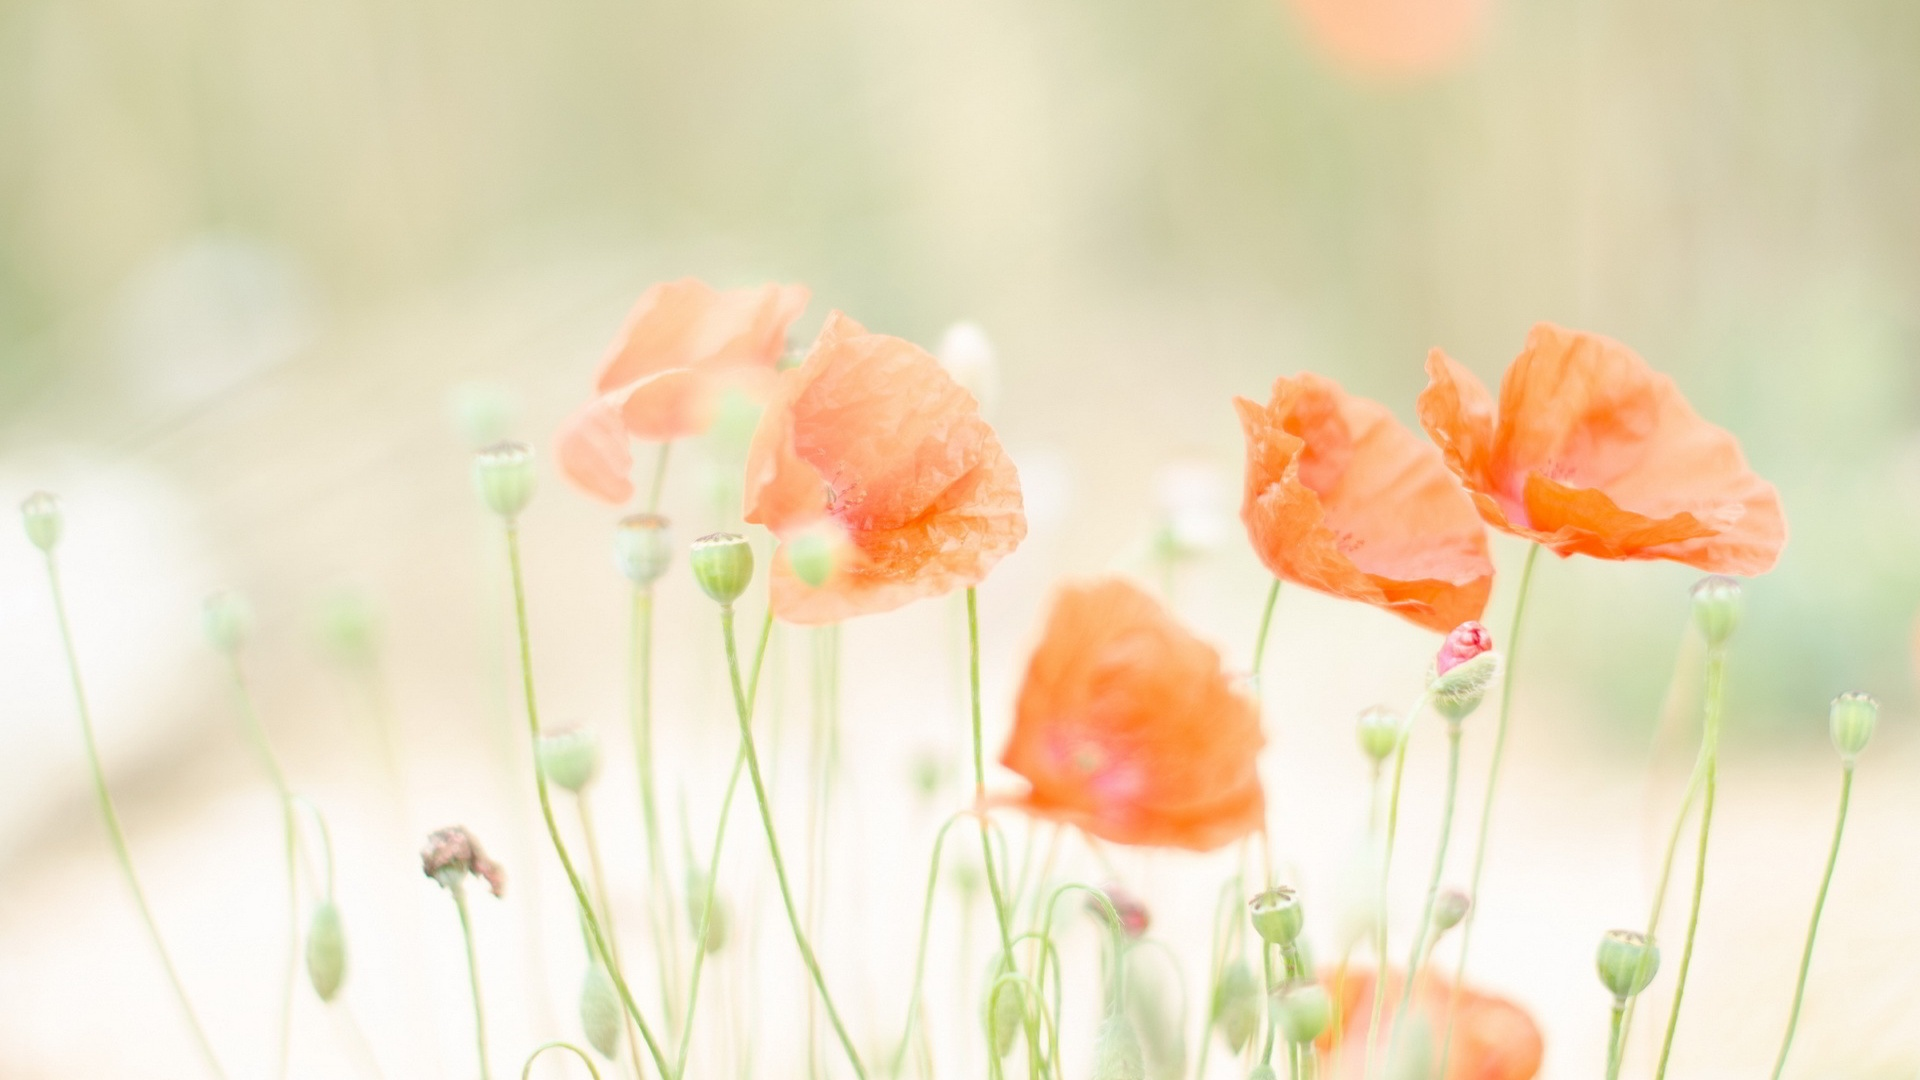 Cute Wallpaper For Facebook Timeline Cover Summer Flowers Wallpapers Pixelstalk Net